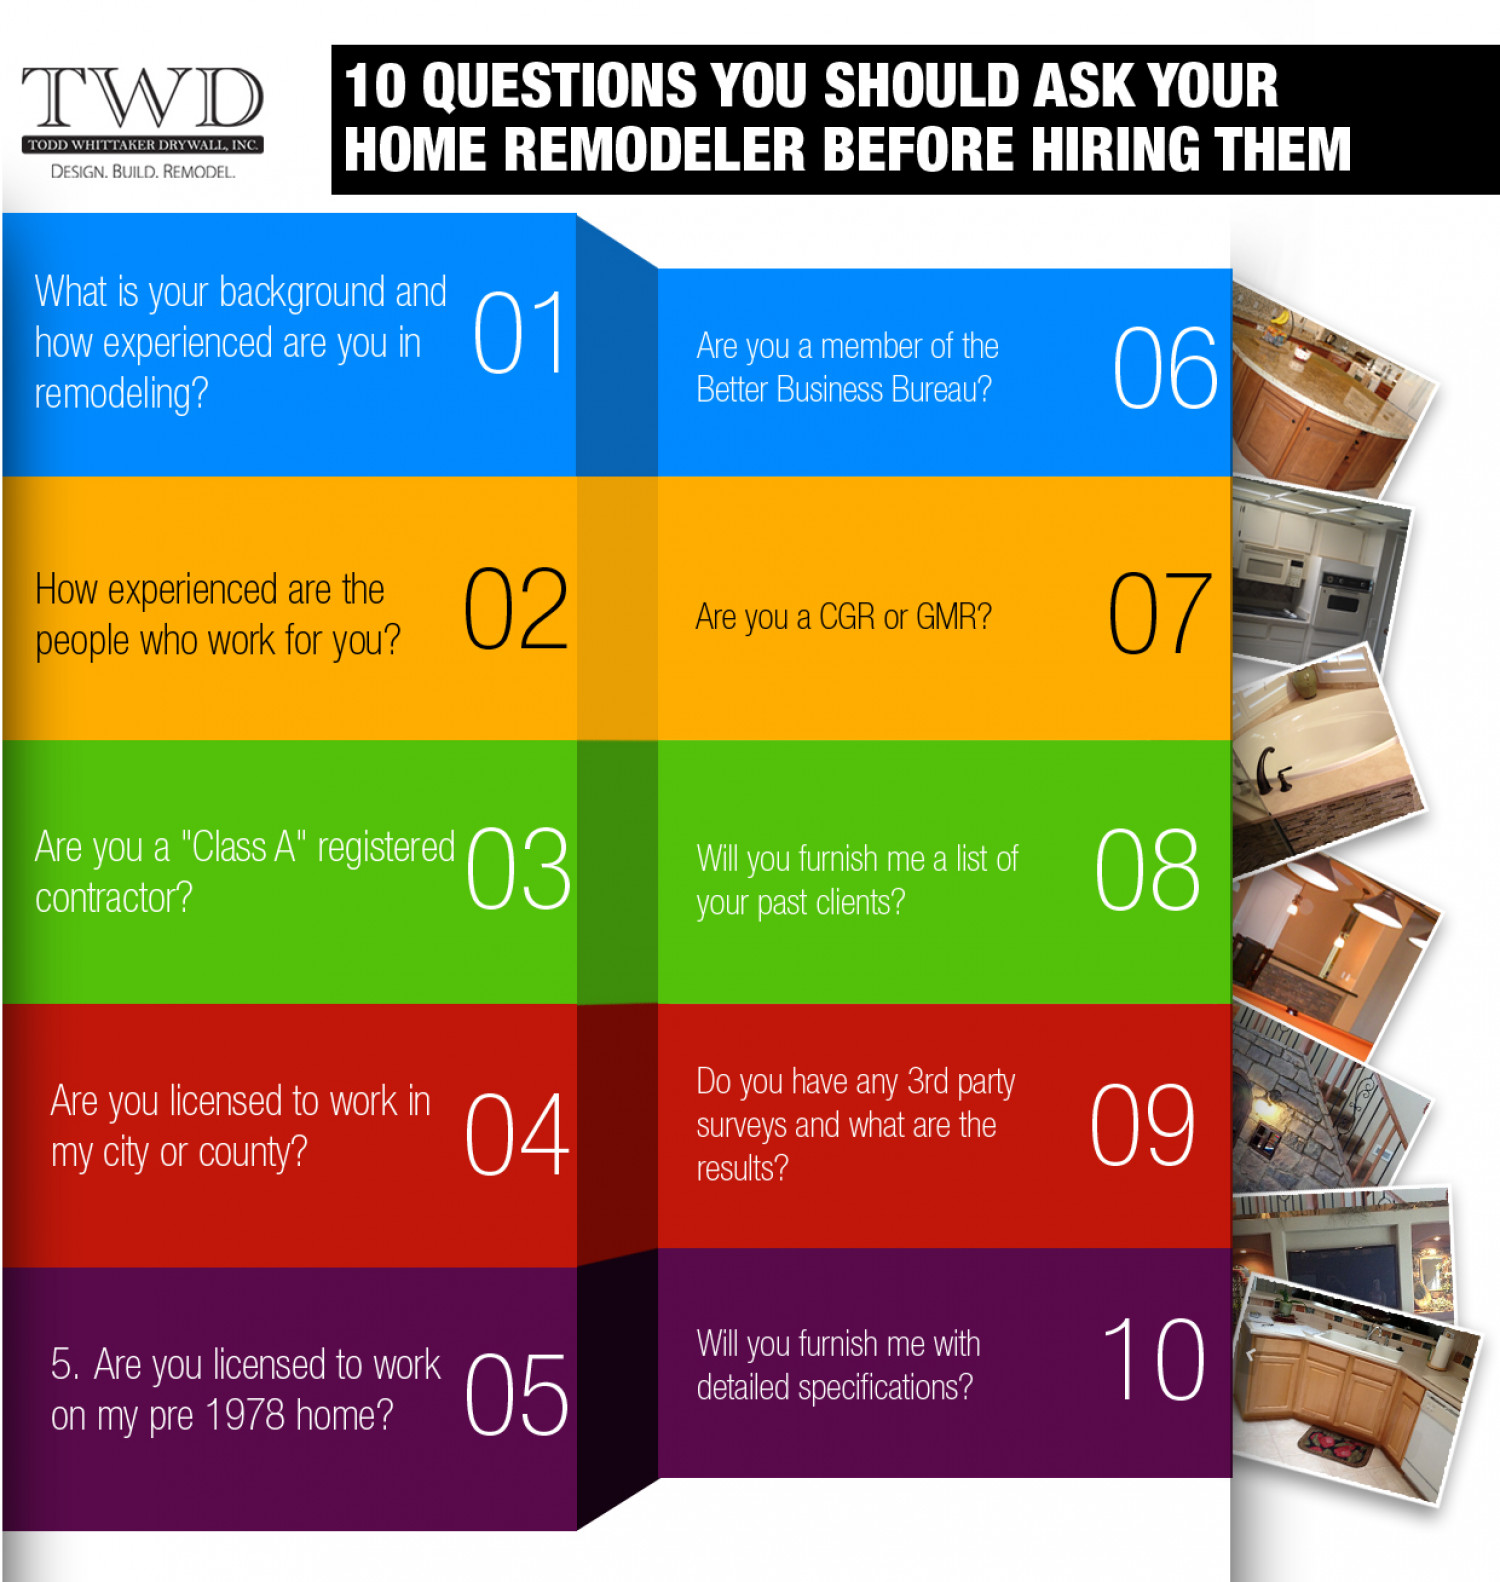 10 Questions You Should Ask Your Home Remodeler before Hiring Them Infographic